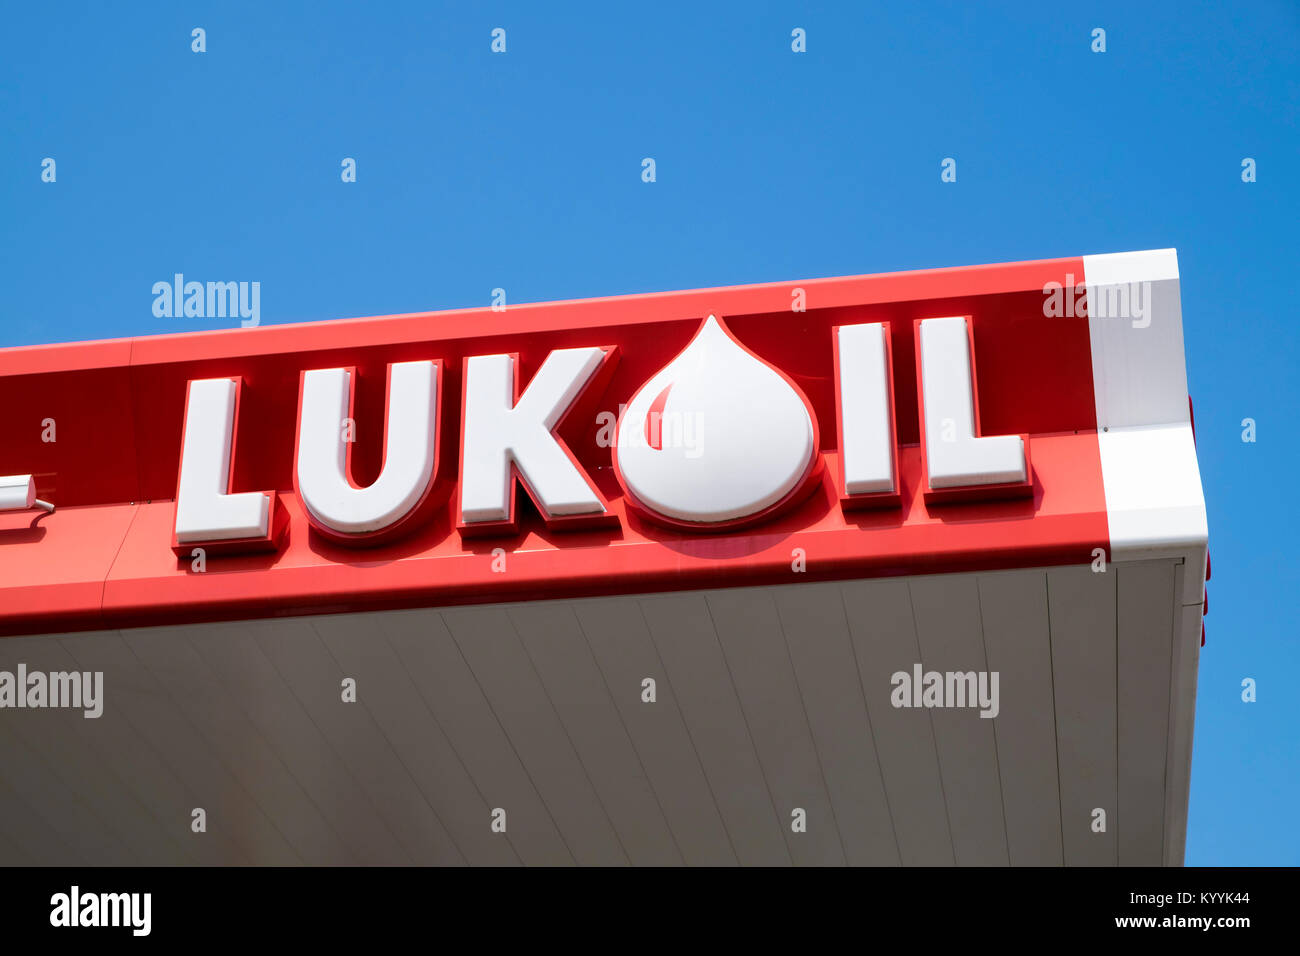 Lukoil sign at one of the Russian oil company's service stations, Russia - Stock Image